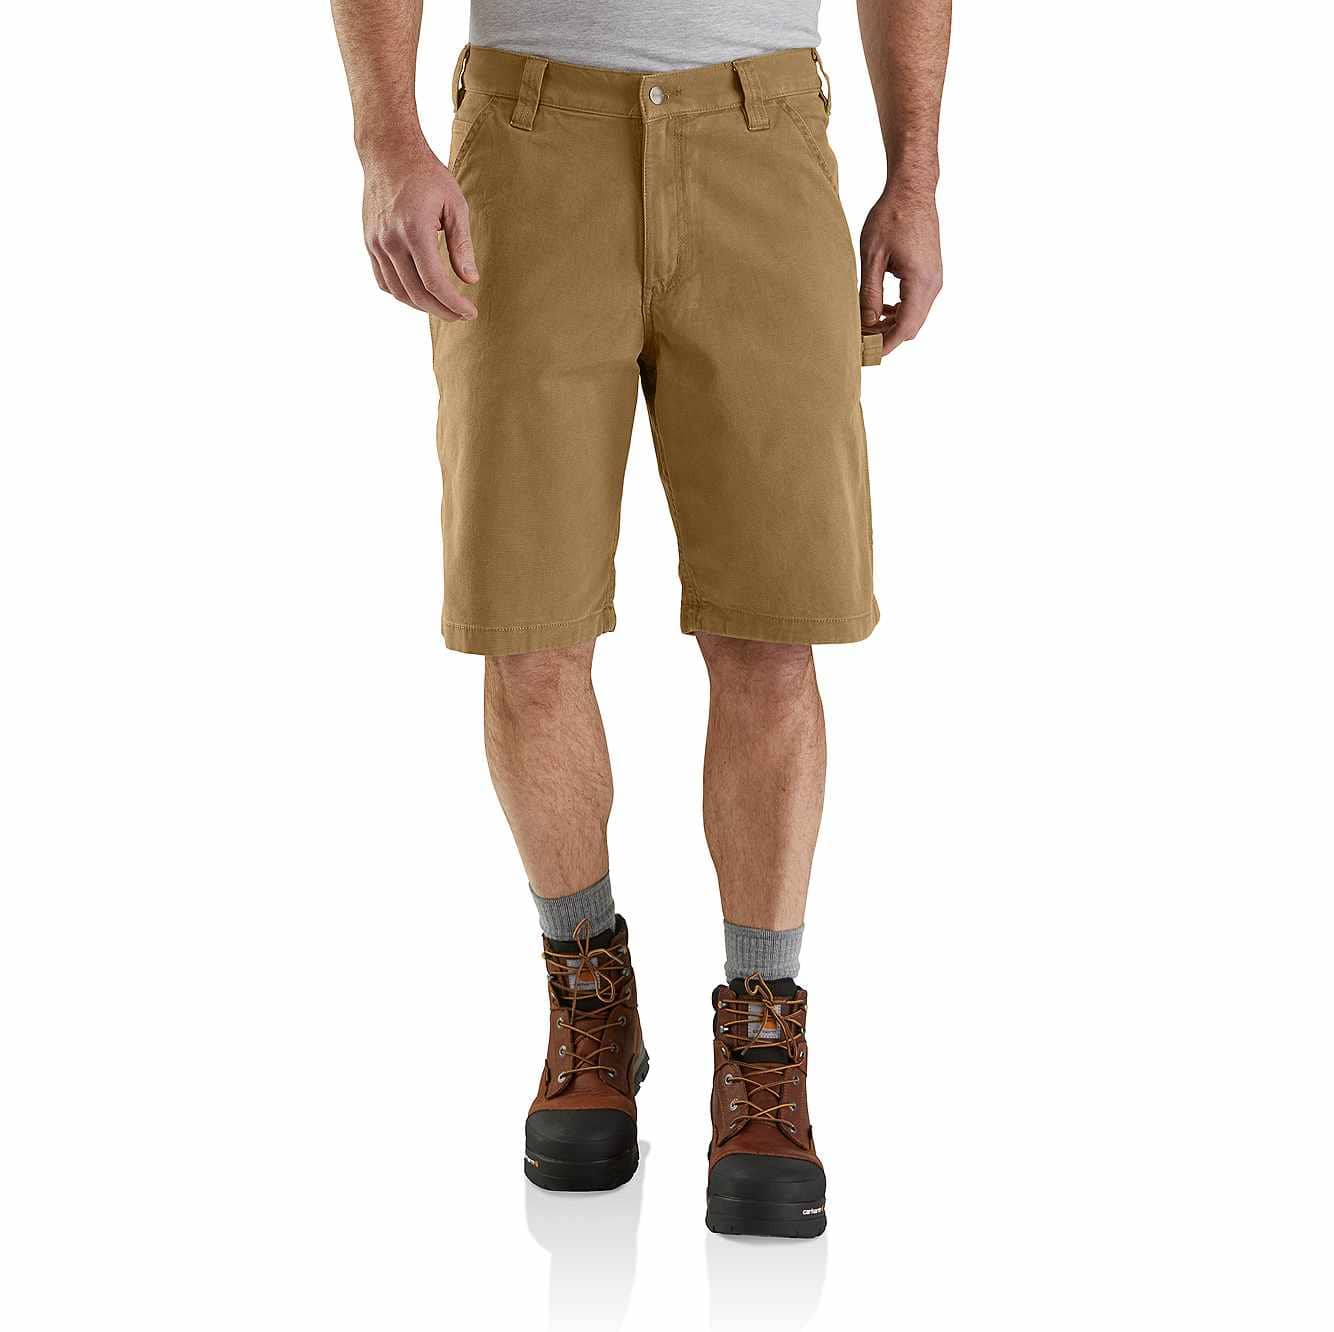 Picture of Rugged Flex® Rigby Work Short in Hickory